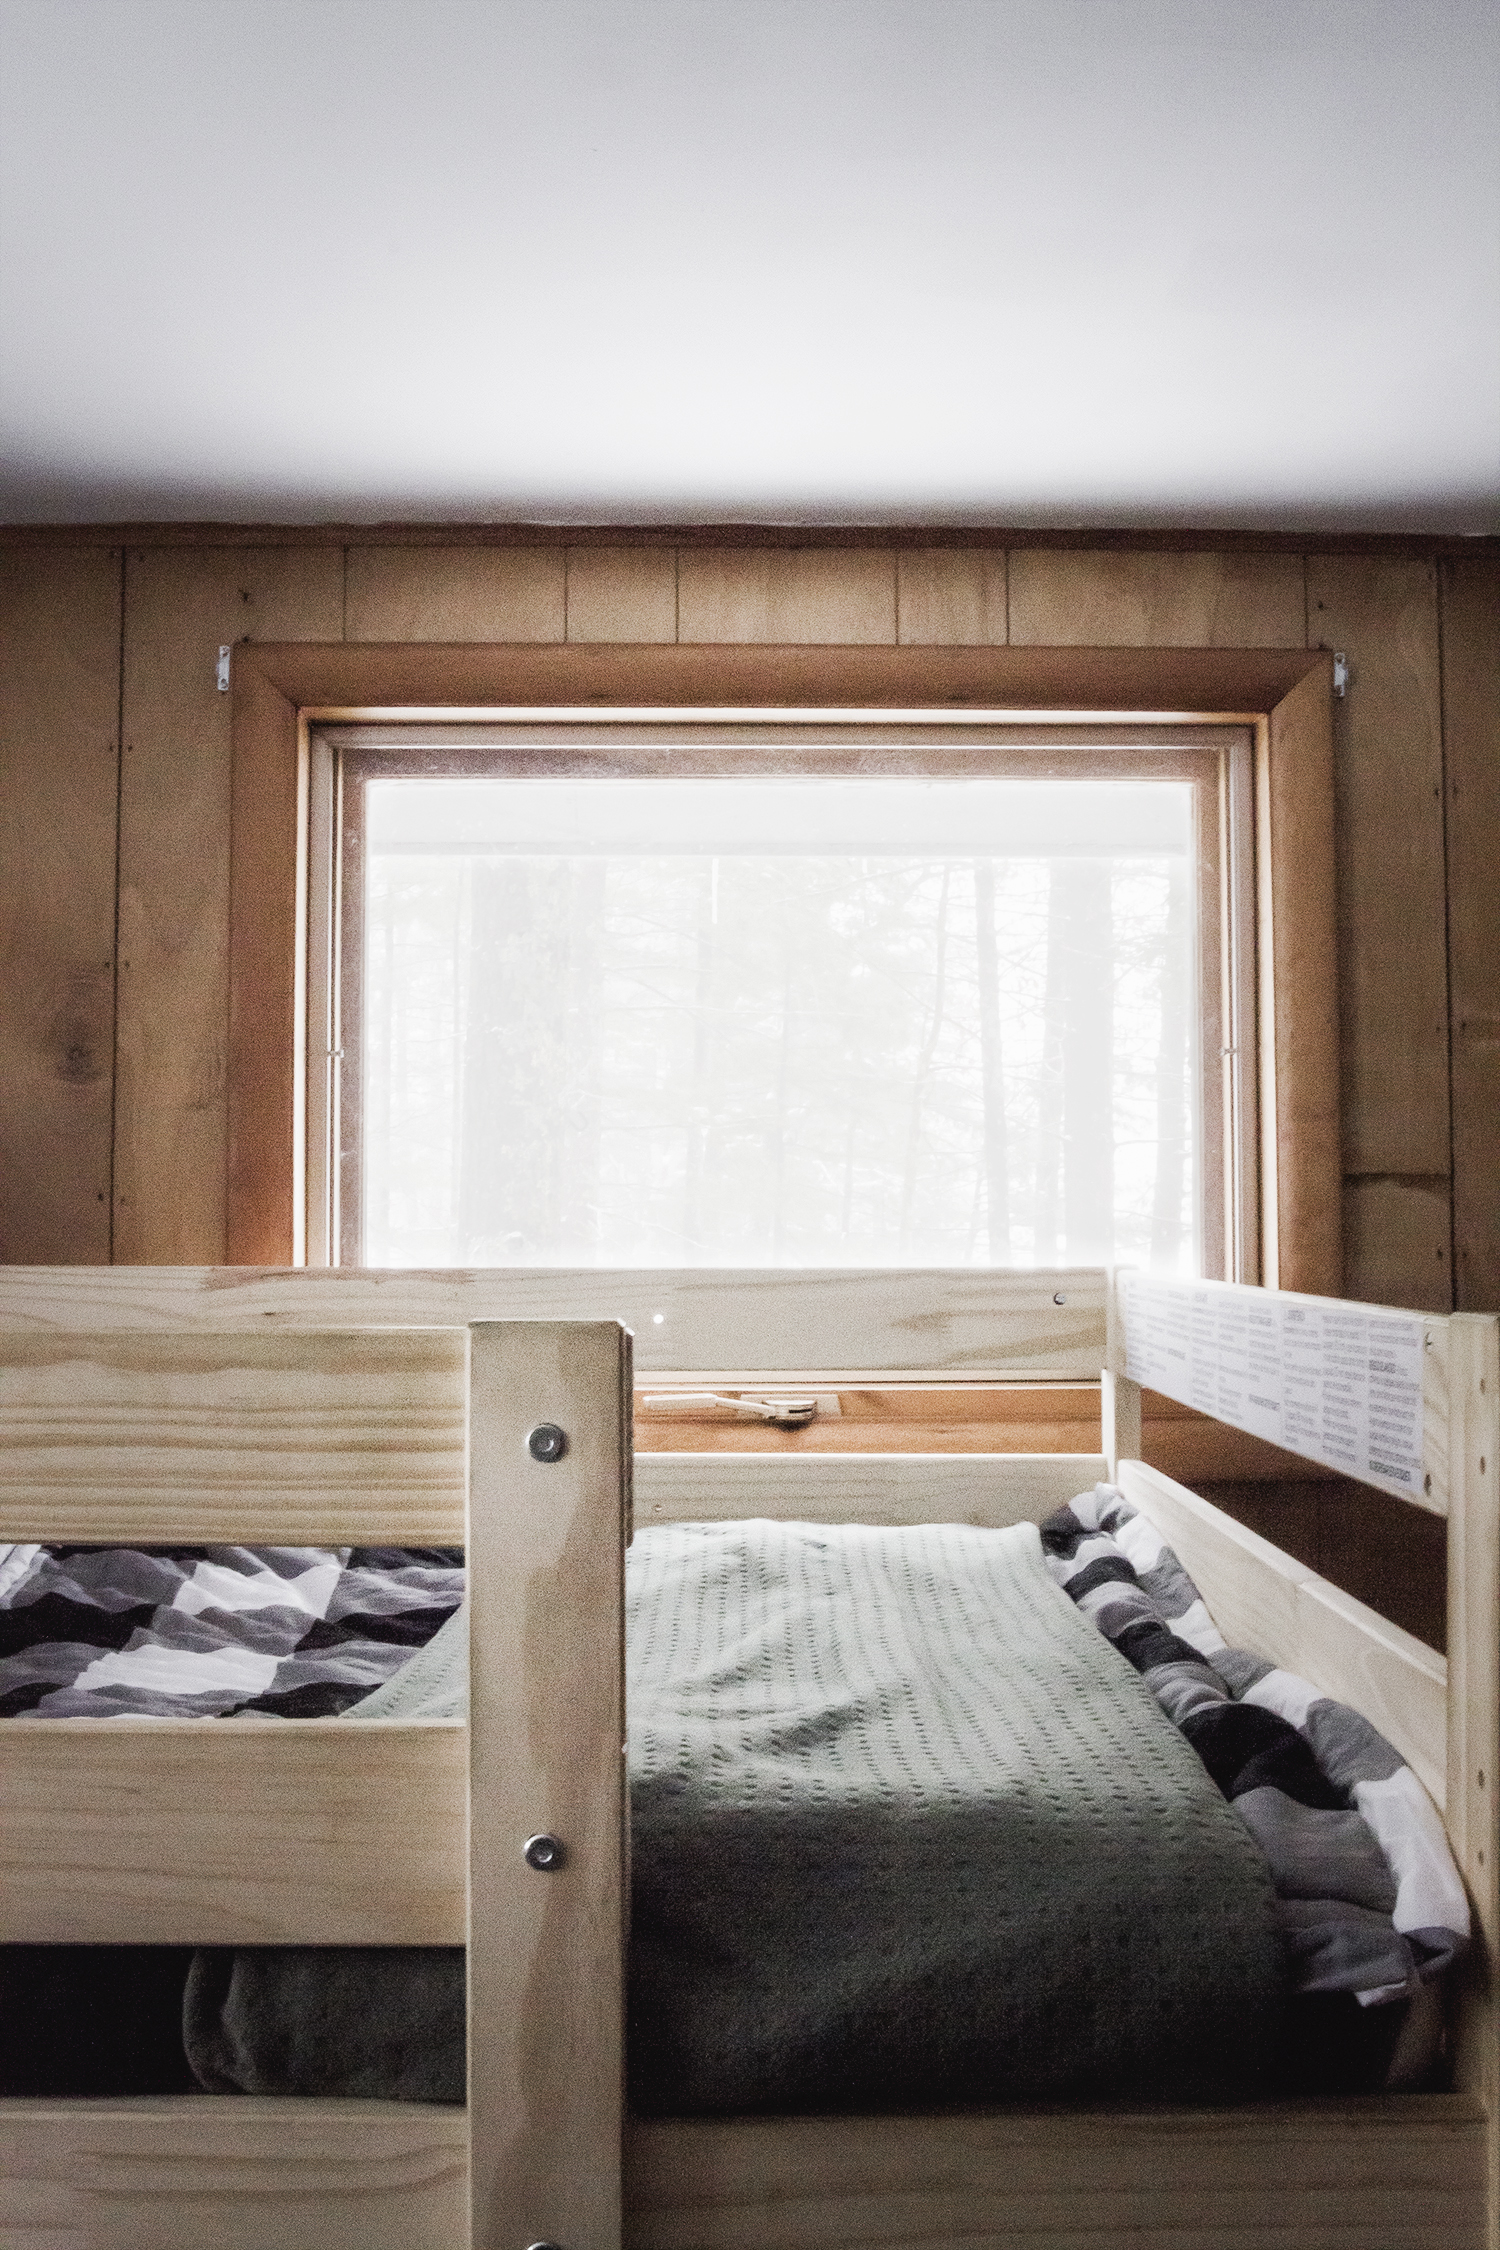 Cabin Bunk Room with Buffalo Check Beddy's